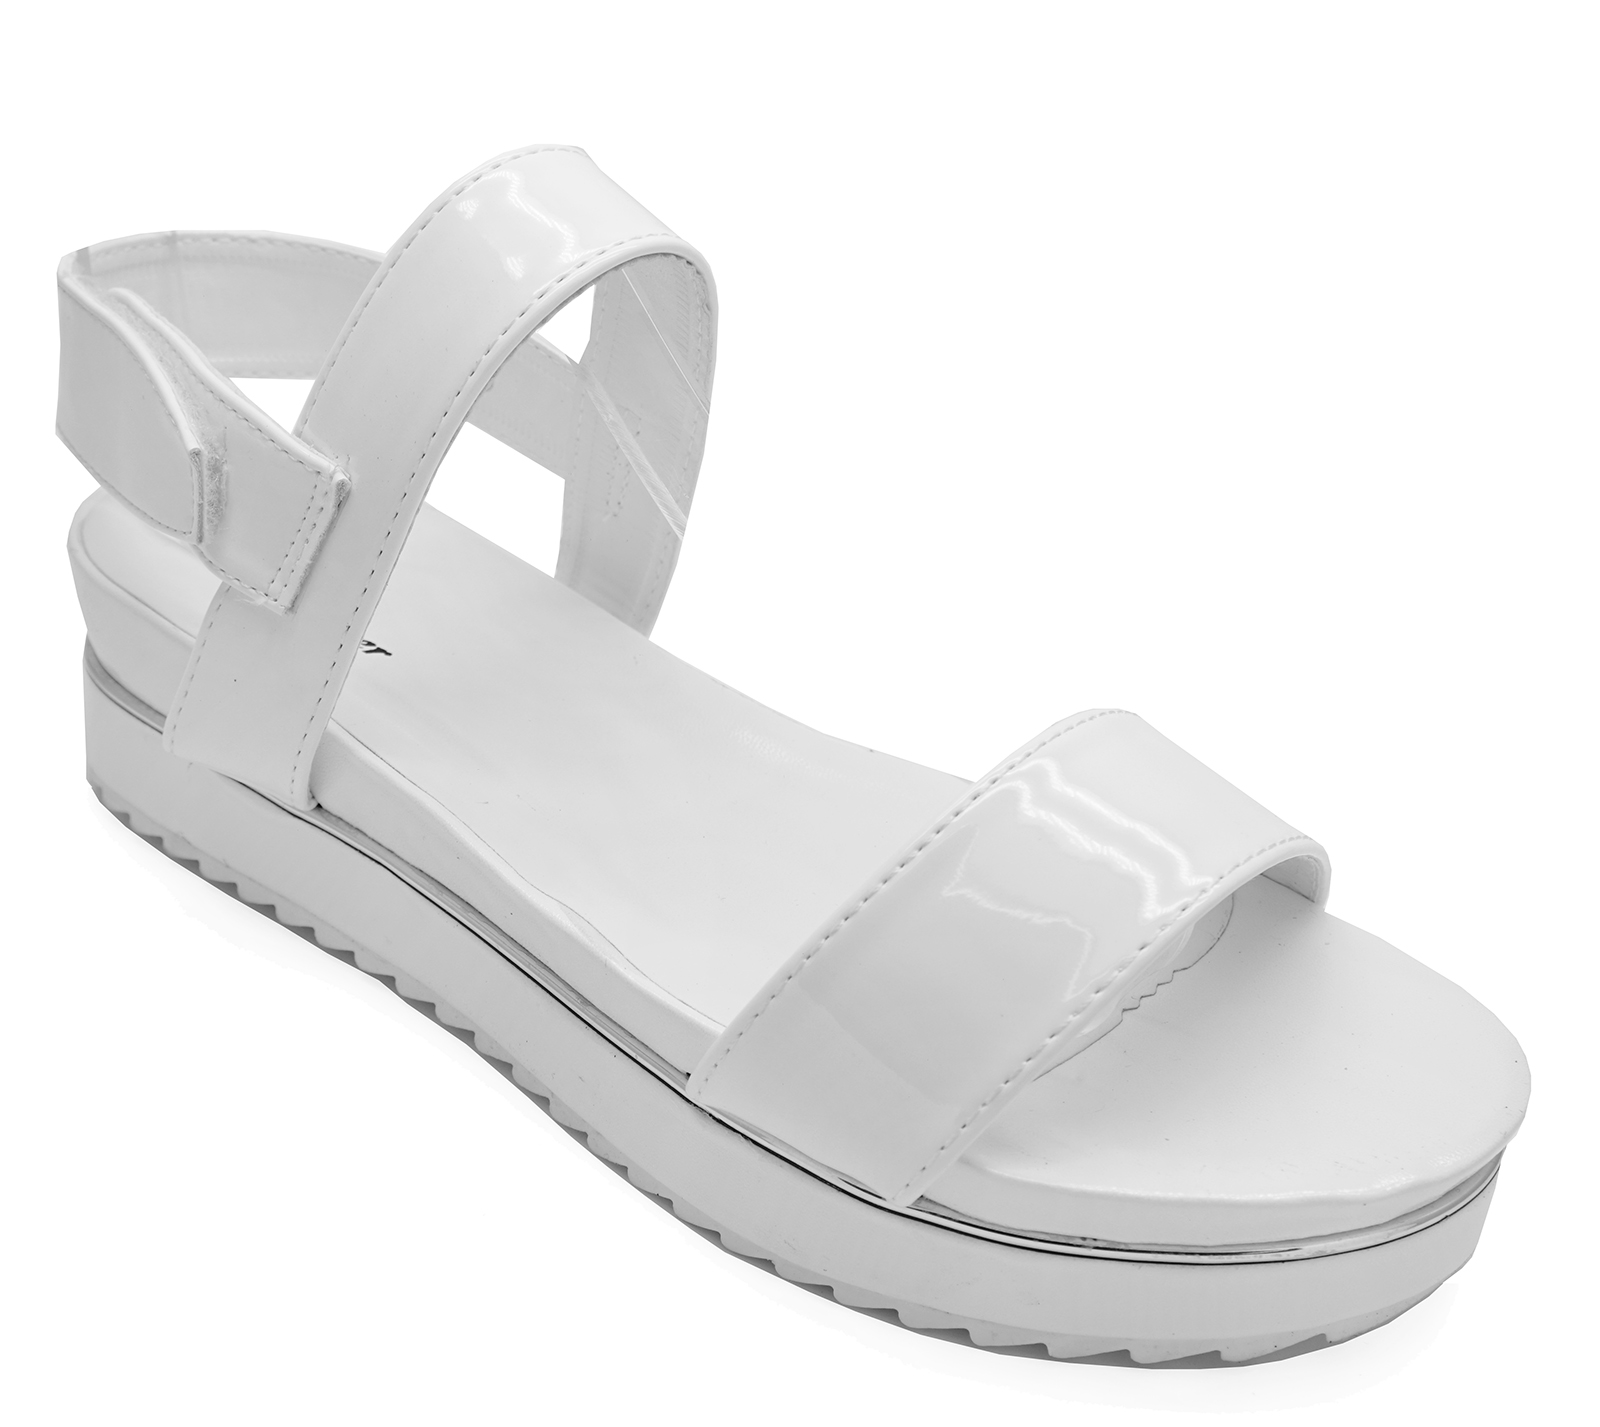 WOMENS WHITE PEEP-TOE FLATFORM WEDGE SANDALS COMFY SUMMER SHOES PUMPS UK 3-8